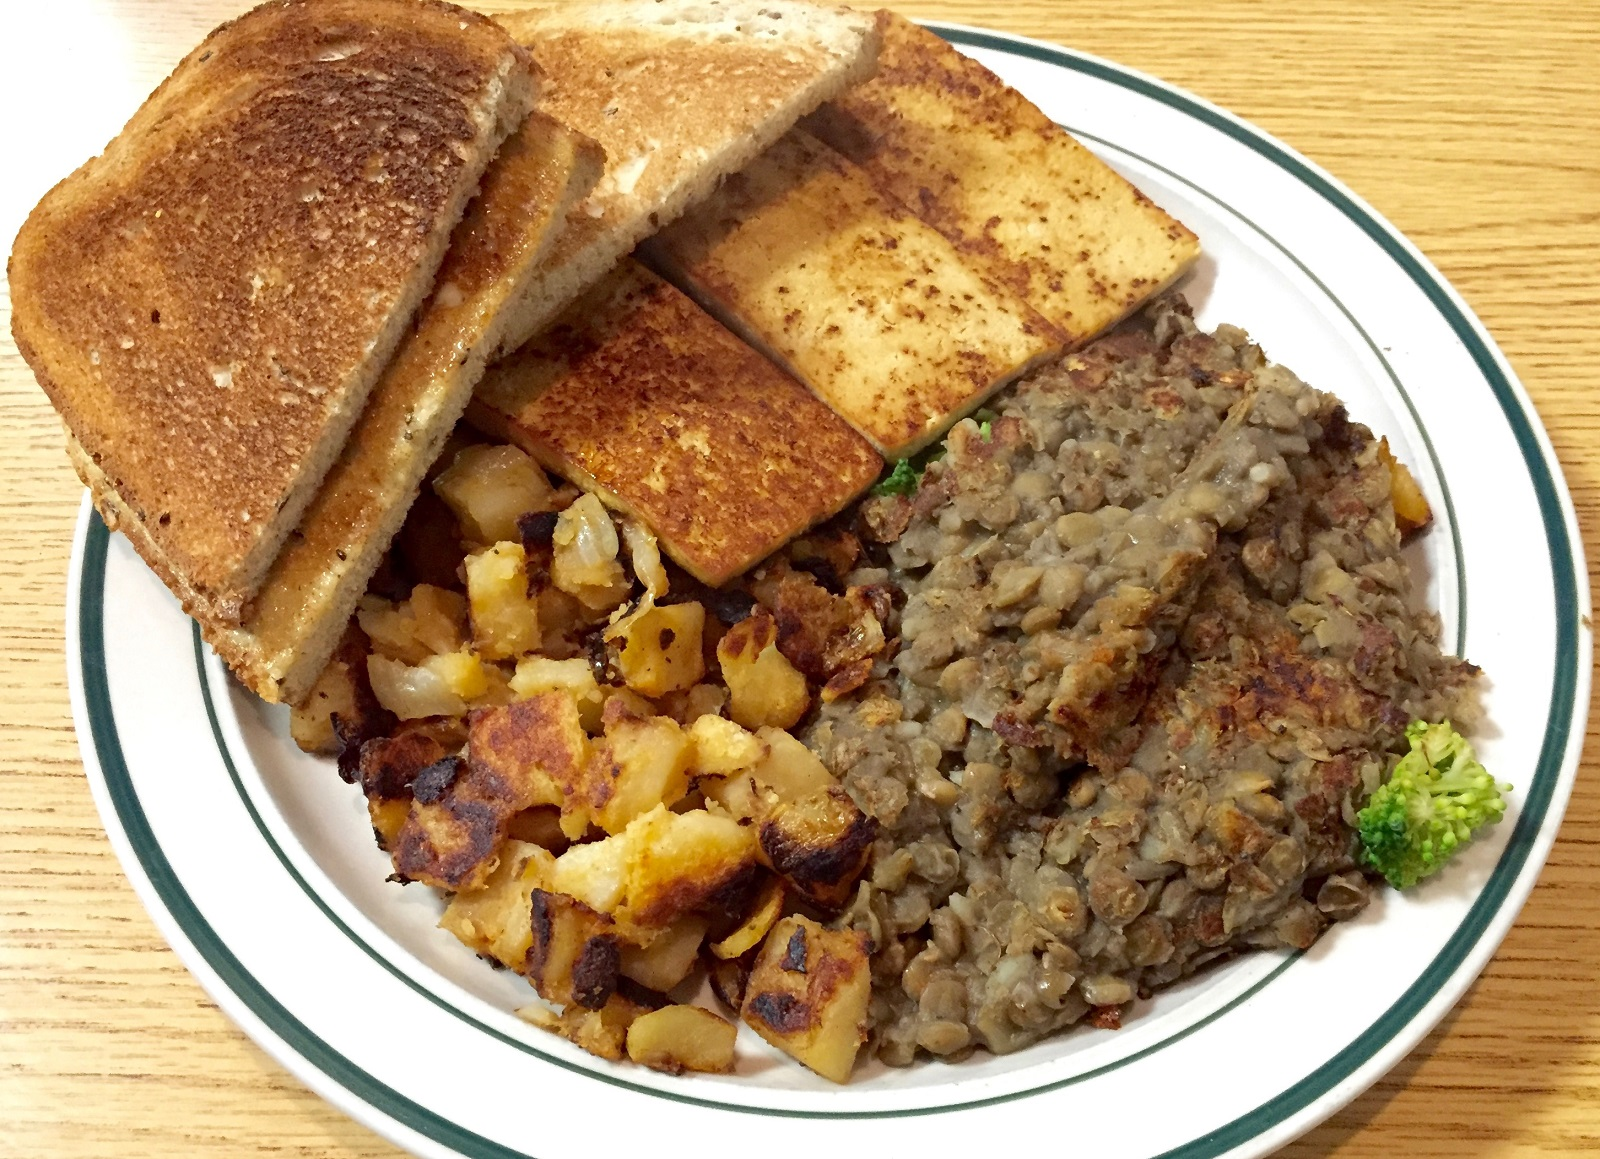 Lentils with broccoli, home fries, rye toast and tofu sizzle strips from Amy's Place ($4.25, early-bird special). (Alex Mikol/Special to The News)